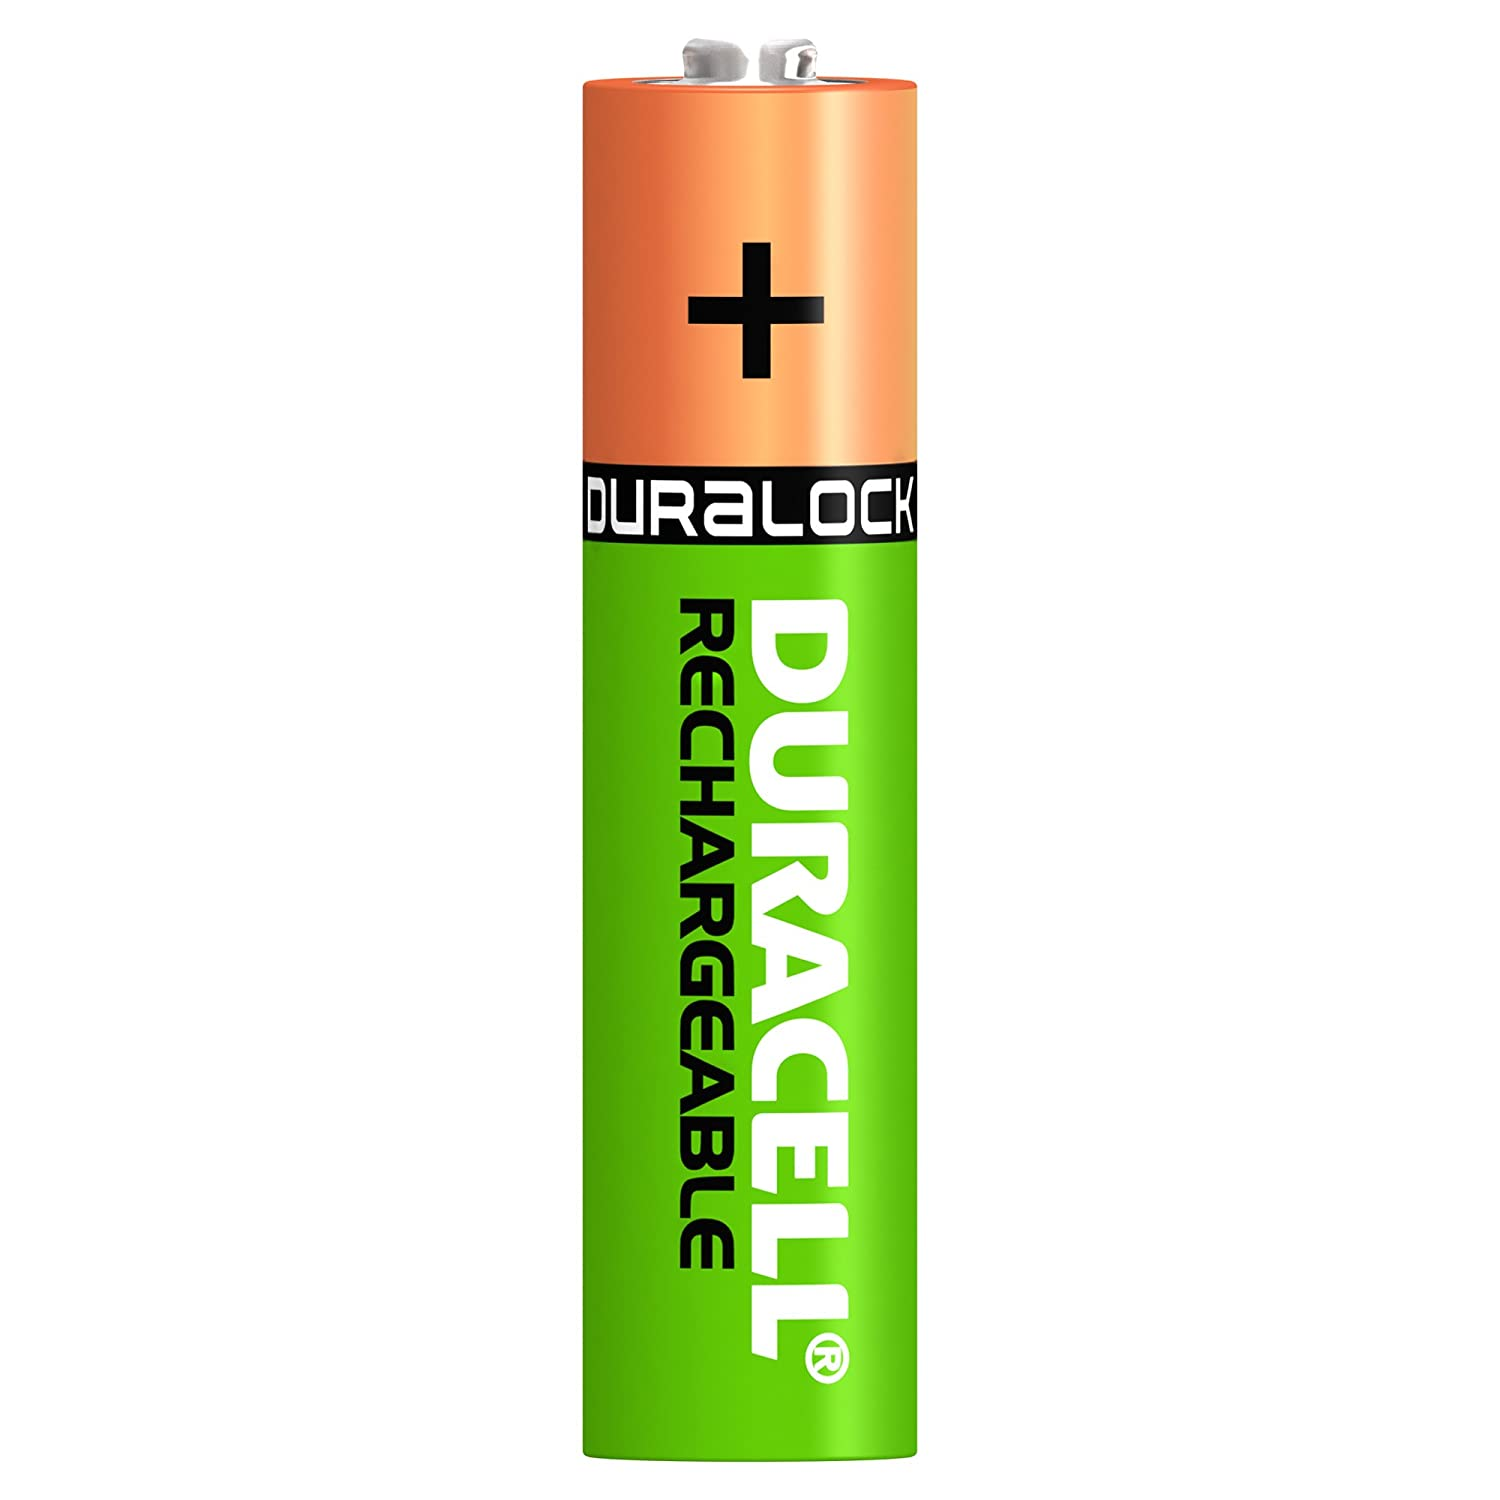 Pile rechargeable - Pile 9v rechargeable ...